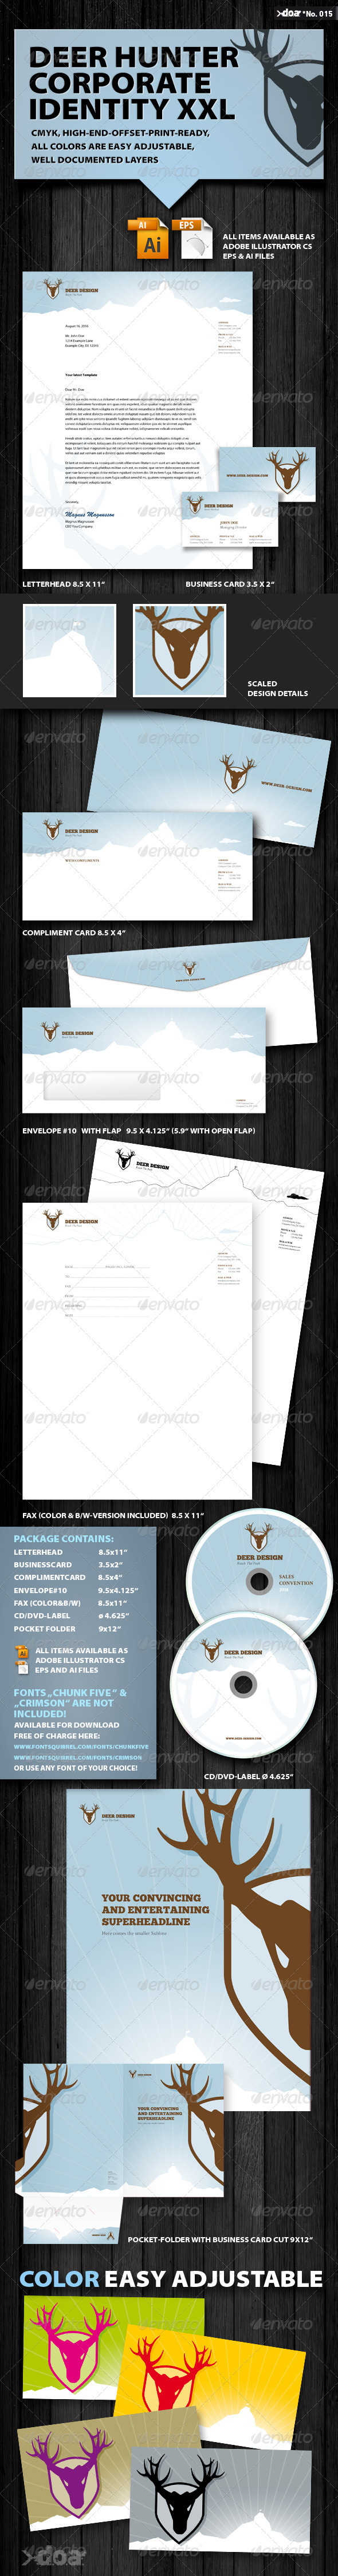 DEER HUNTER Corporate Identity XXL - Stationery Print Templates